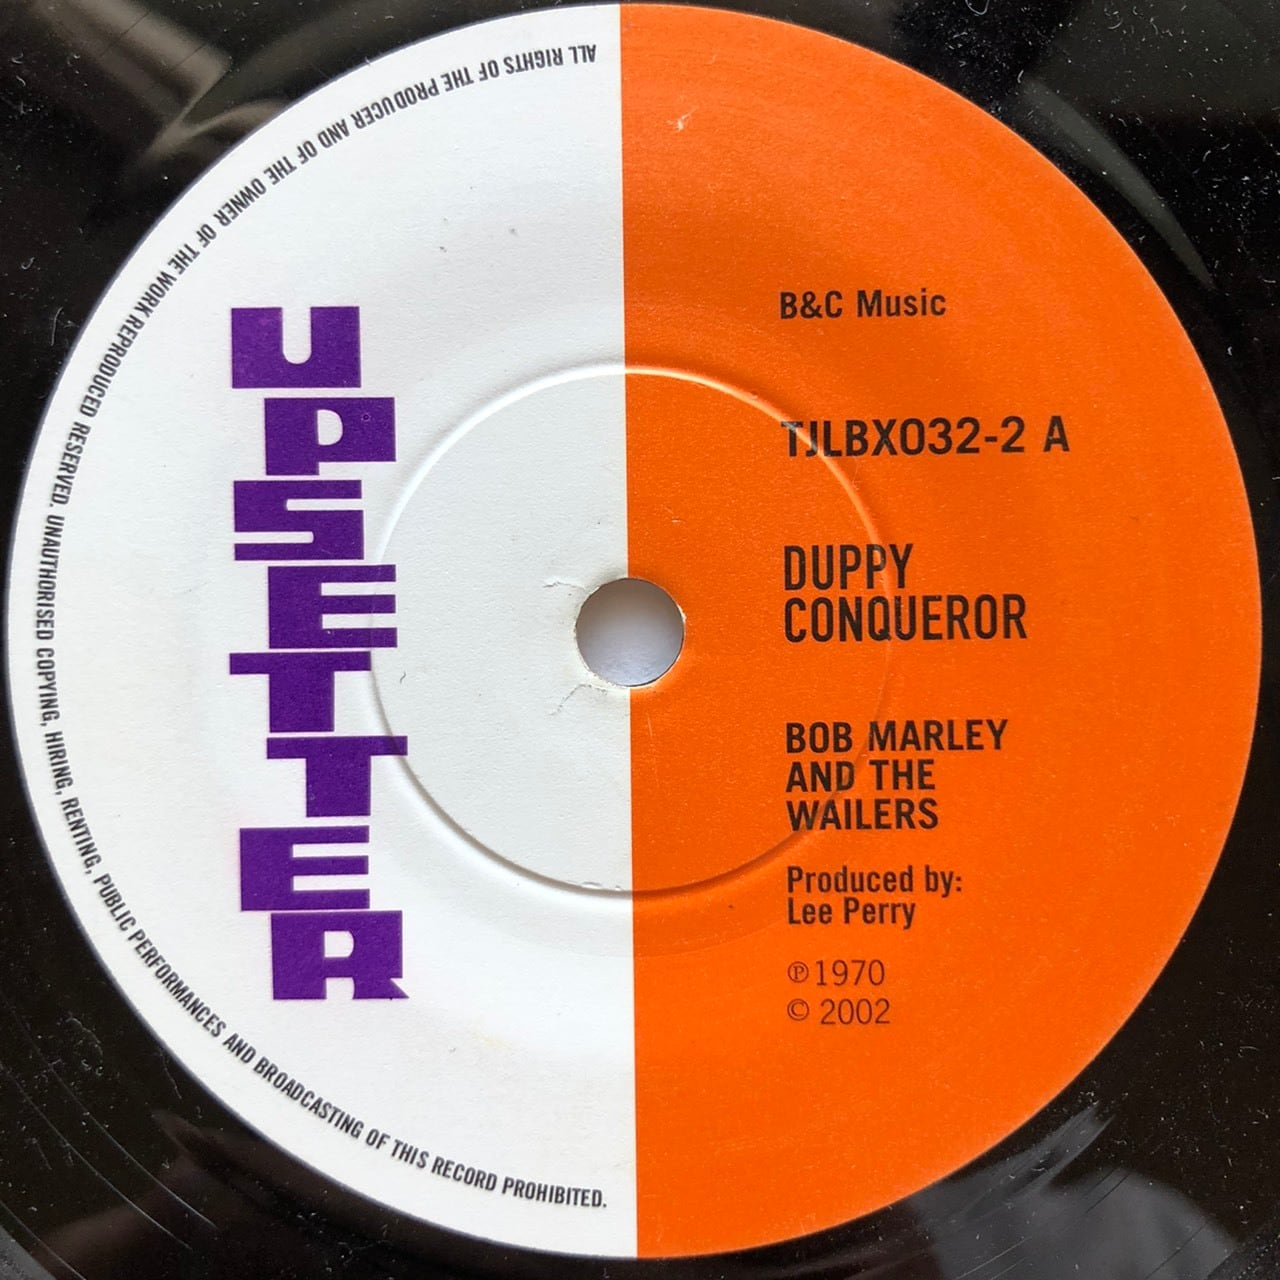 Bob Marley And The Wailers - Duppy Conqueror【7-11002】